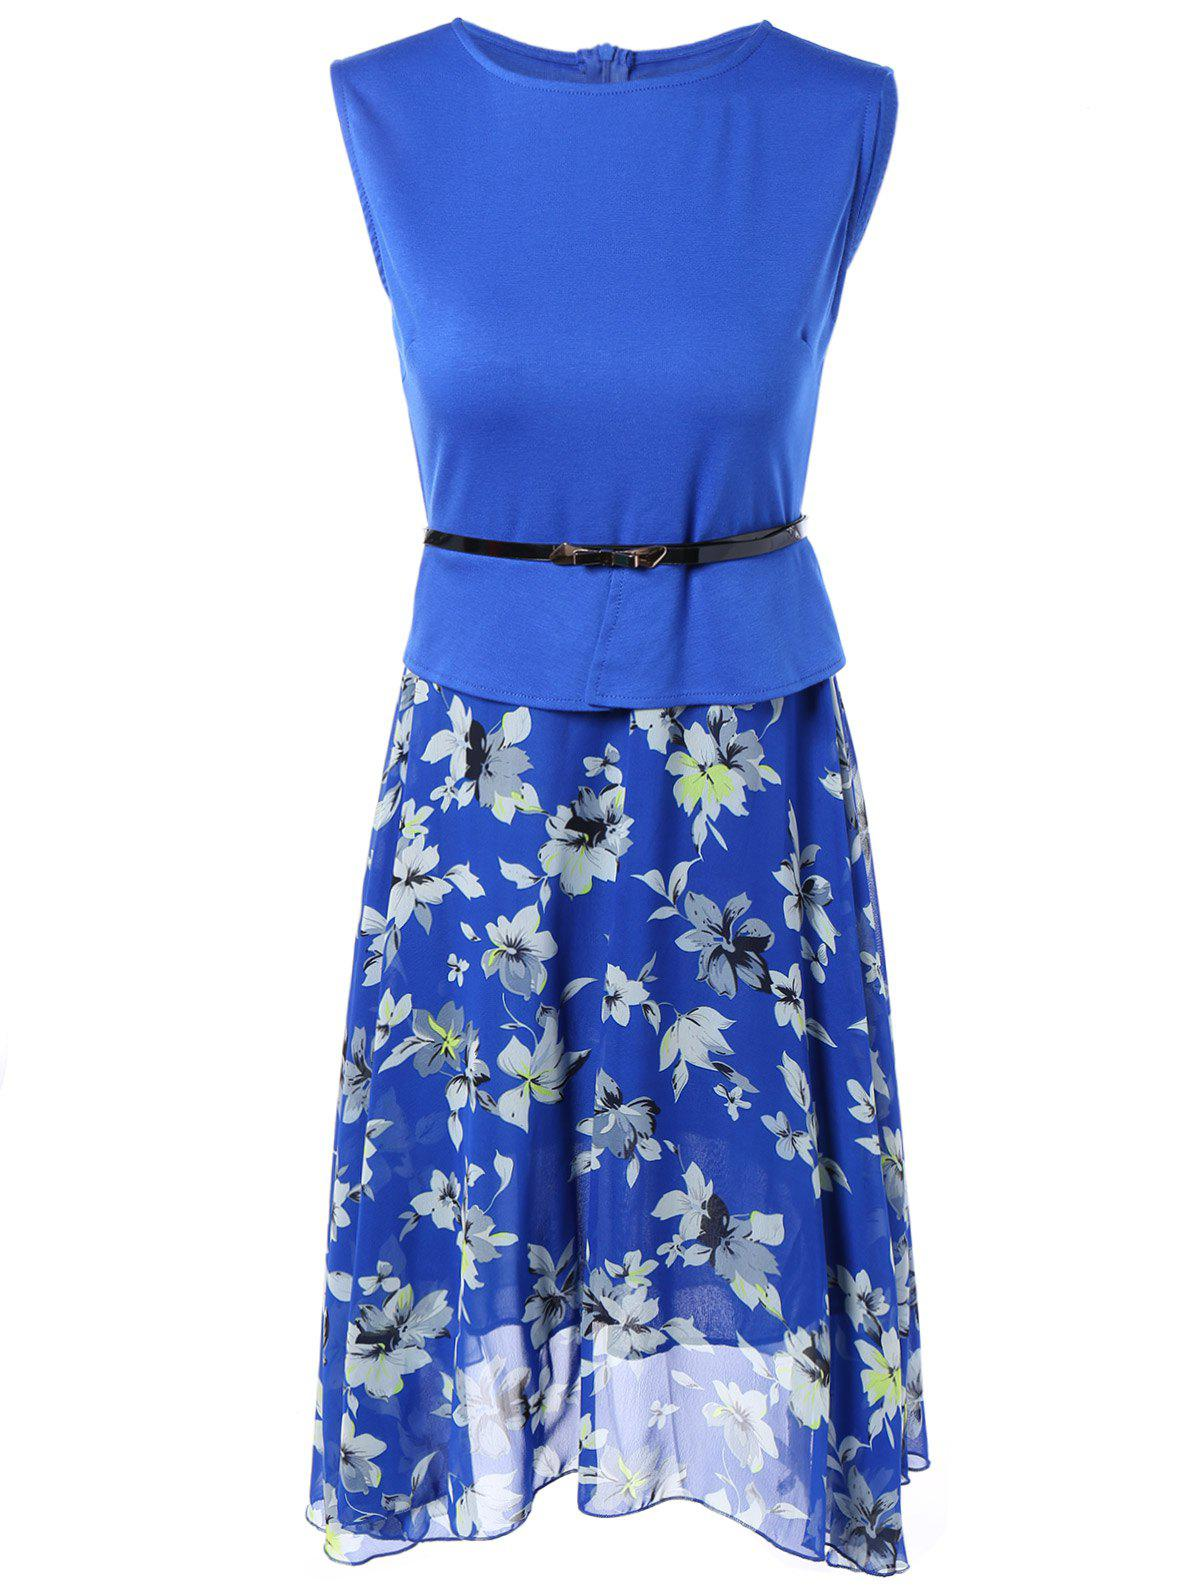 Sleeveless Spliced Floral Print Chiffon Dress - BLUE 2XL